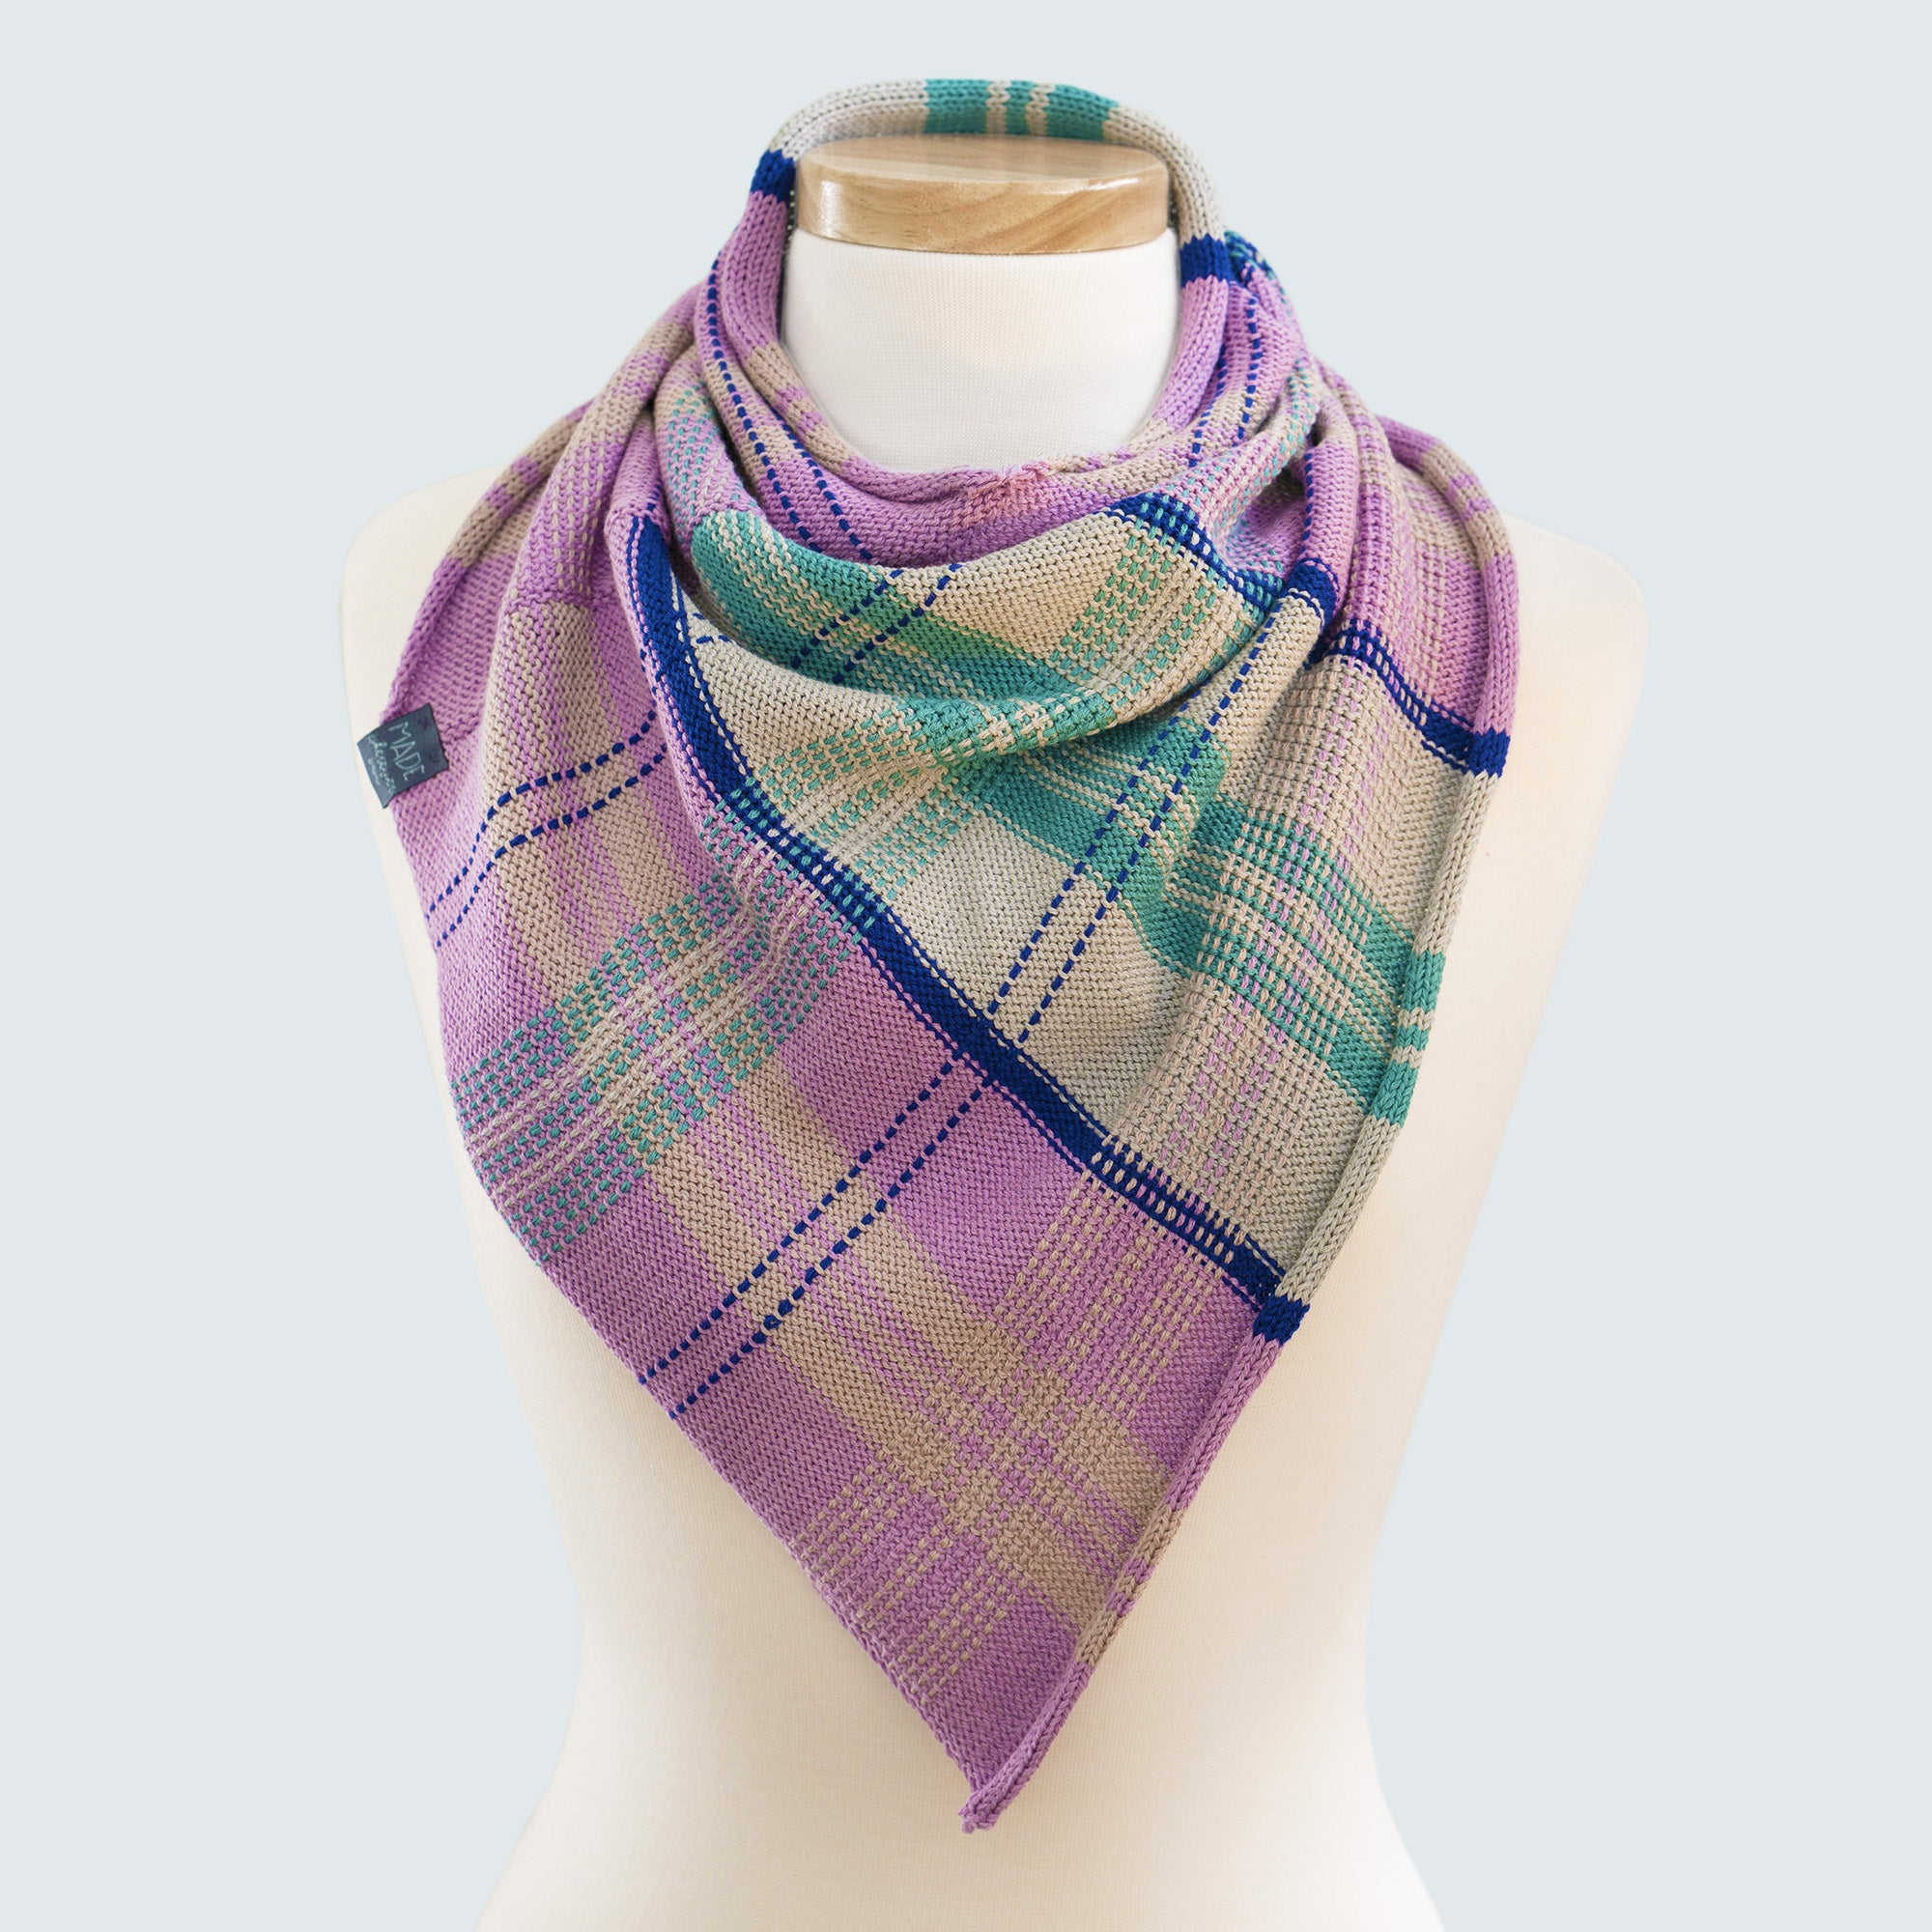 Spring bandana cowl scarf in wool cotton blend with tartan design in purple, grey, blue and green